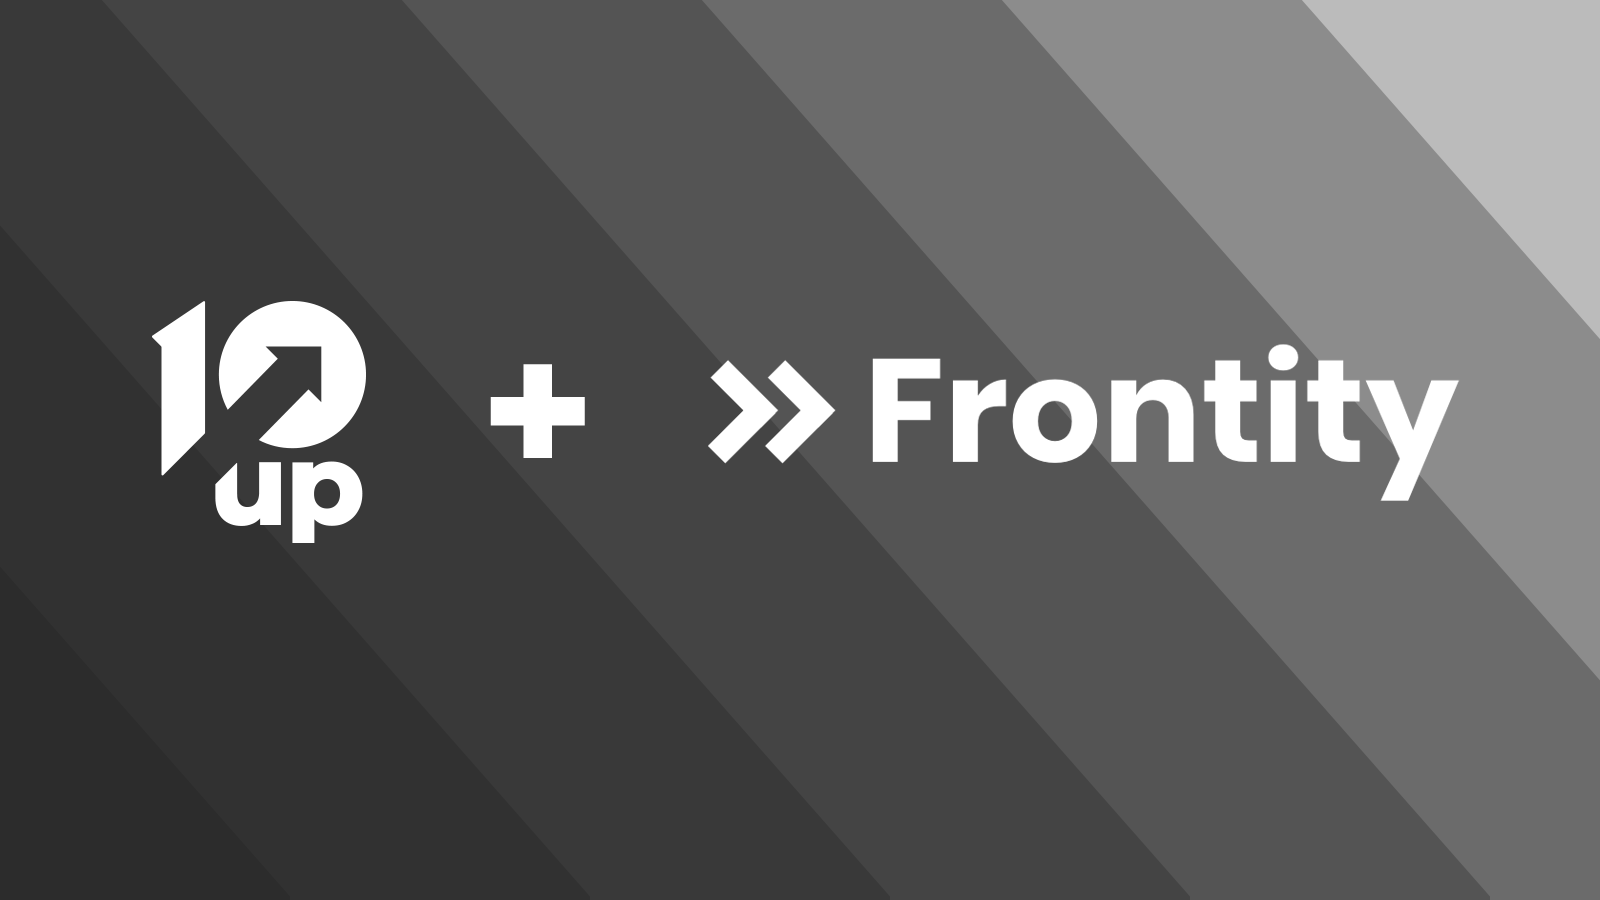 10up + Frontity Partnership